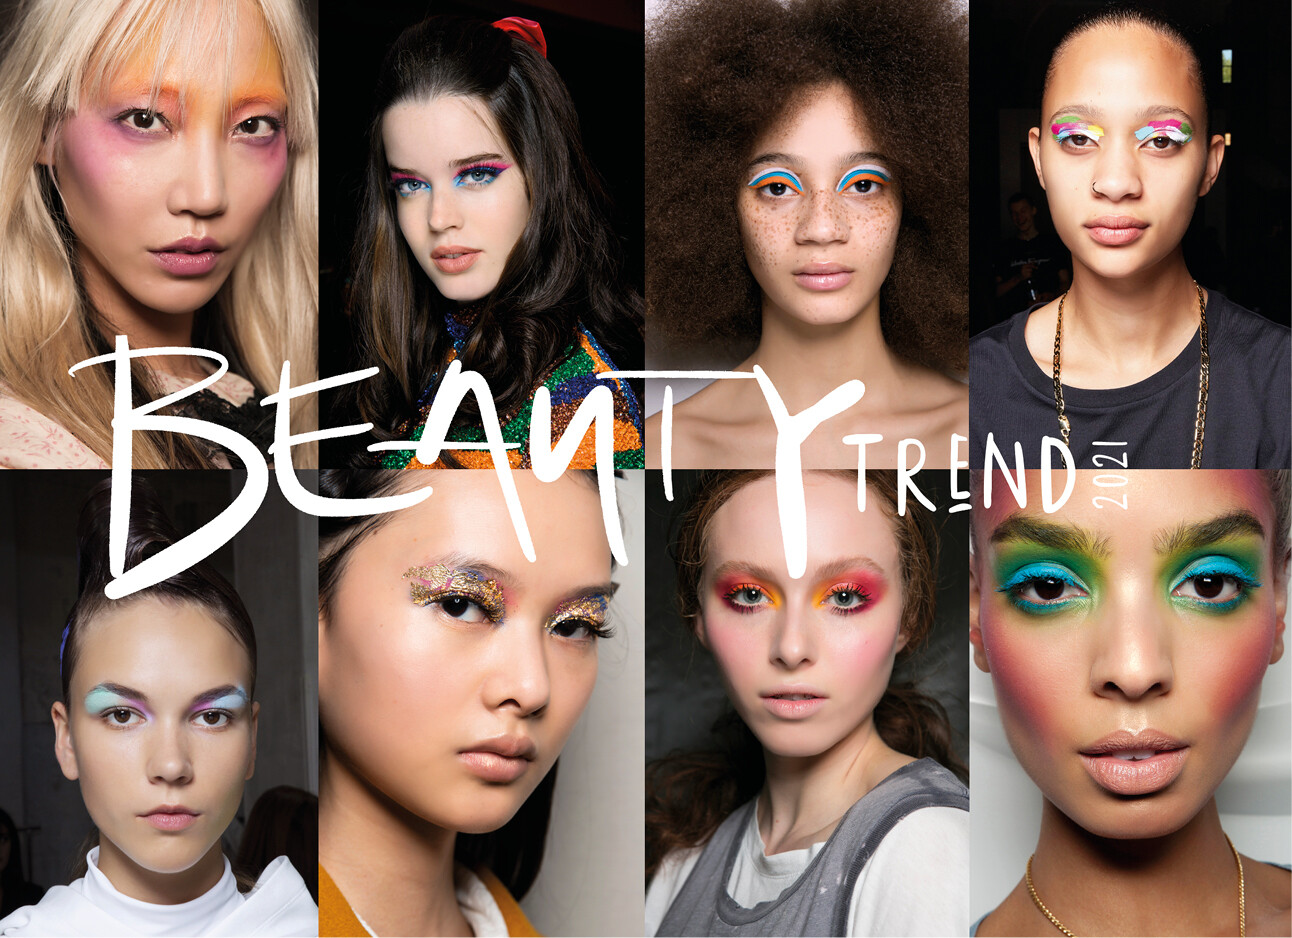 Big make-up trend 2021 backstage beauty